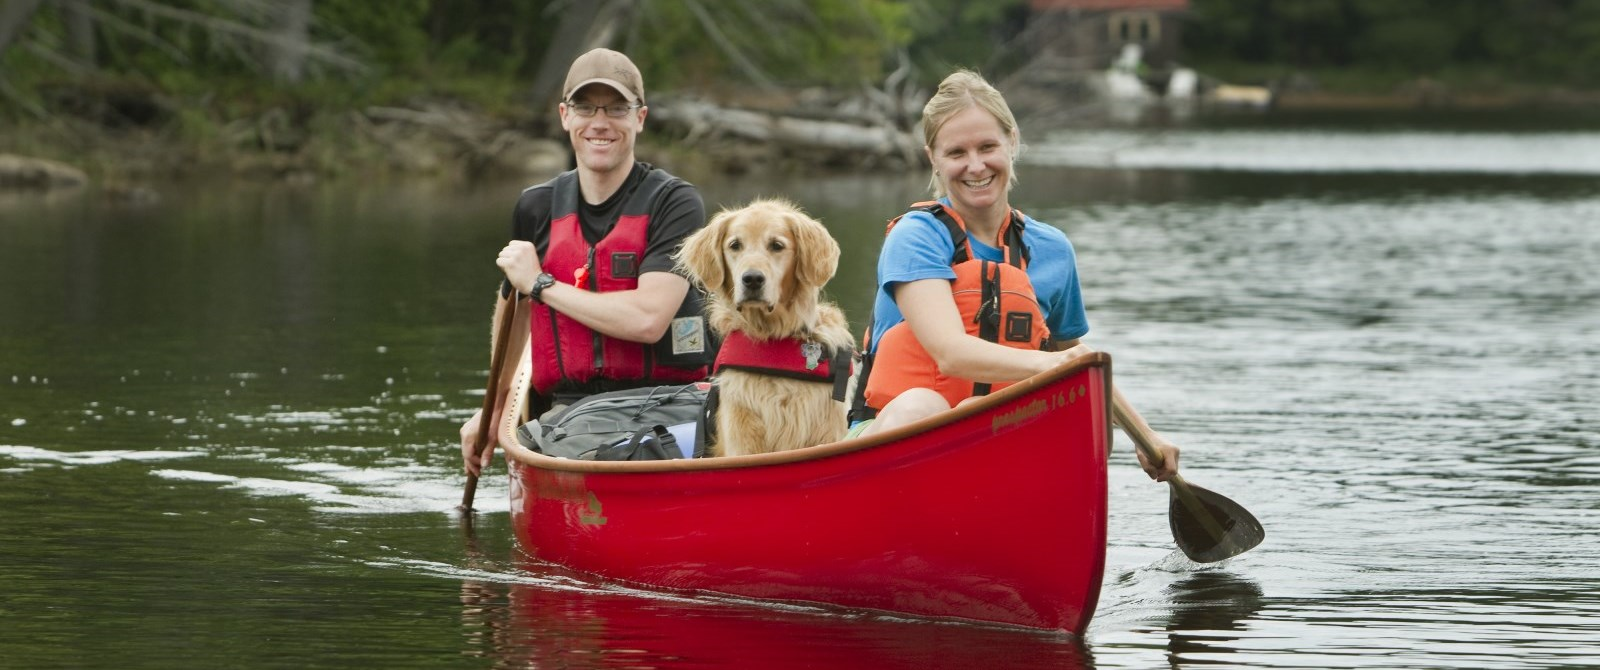 canoe with 2 people and a dog in it